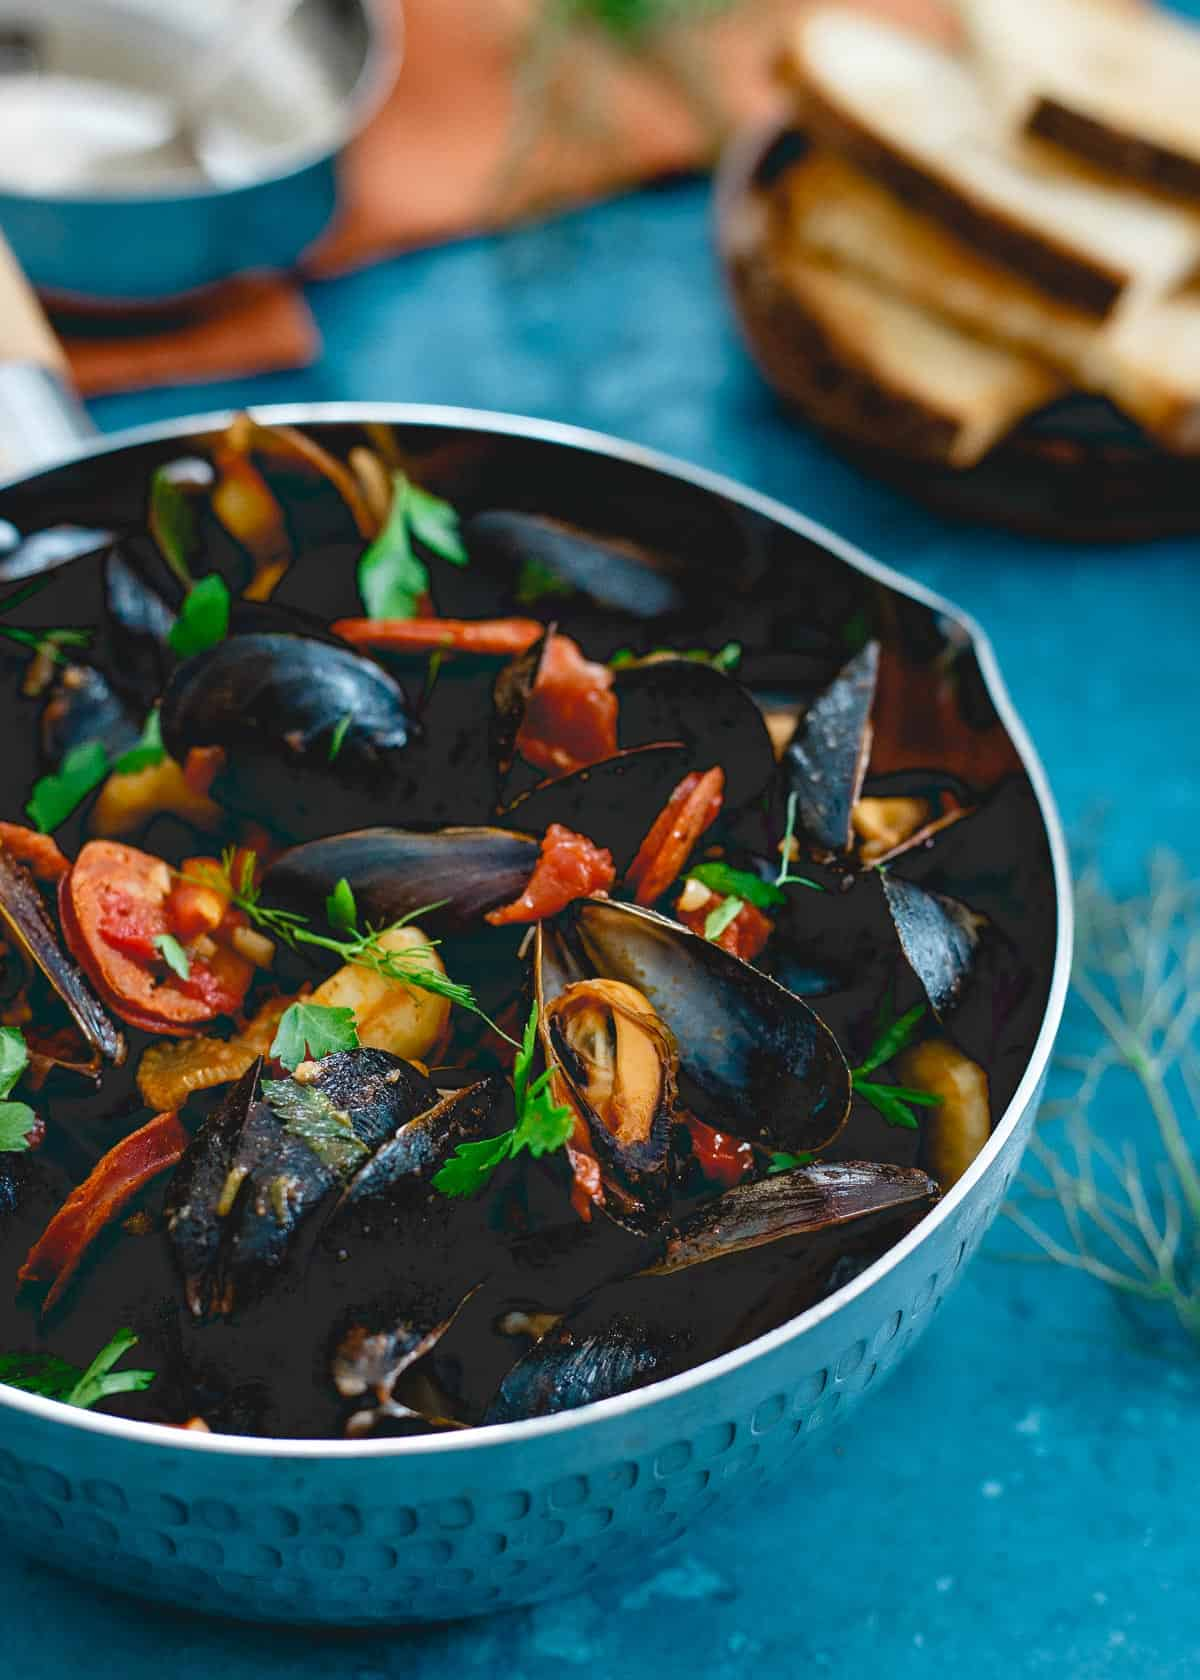 These chorizo chili mussels are an easy, one pot meal made in 20 minutes with spicy dried chiles, fennel and chorizo in a chunky tomato broth. Serve with some warm crusty bread for a seafood feast!